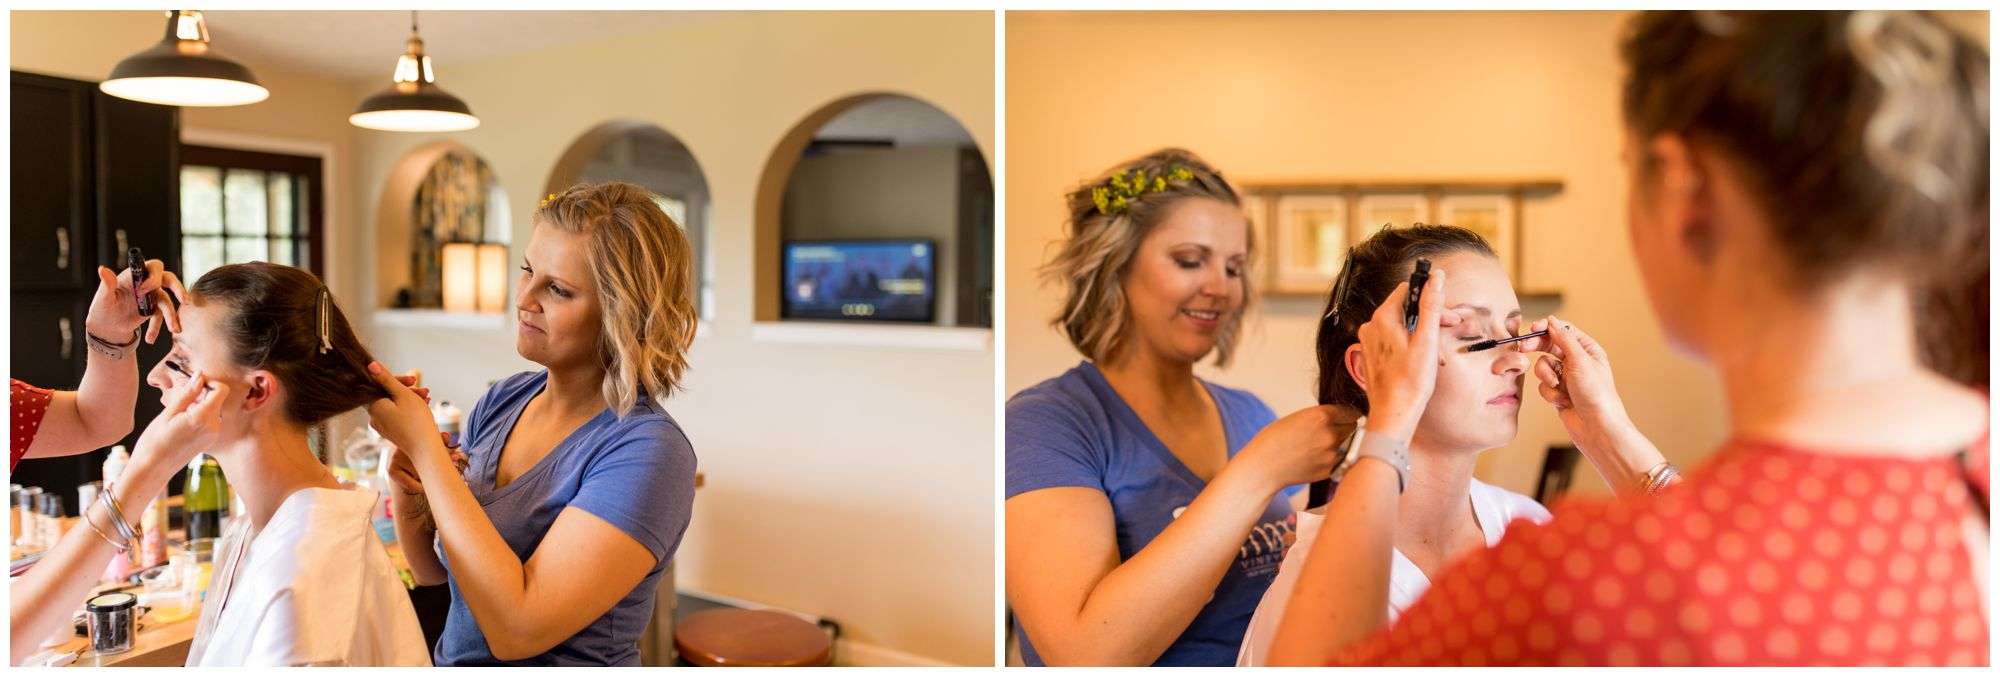 bride getting makeup done for Indianapolis wedding day